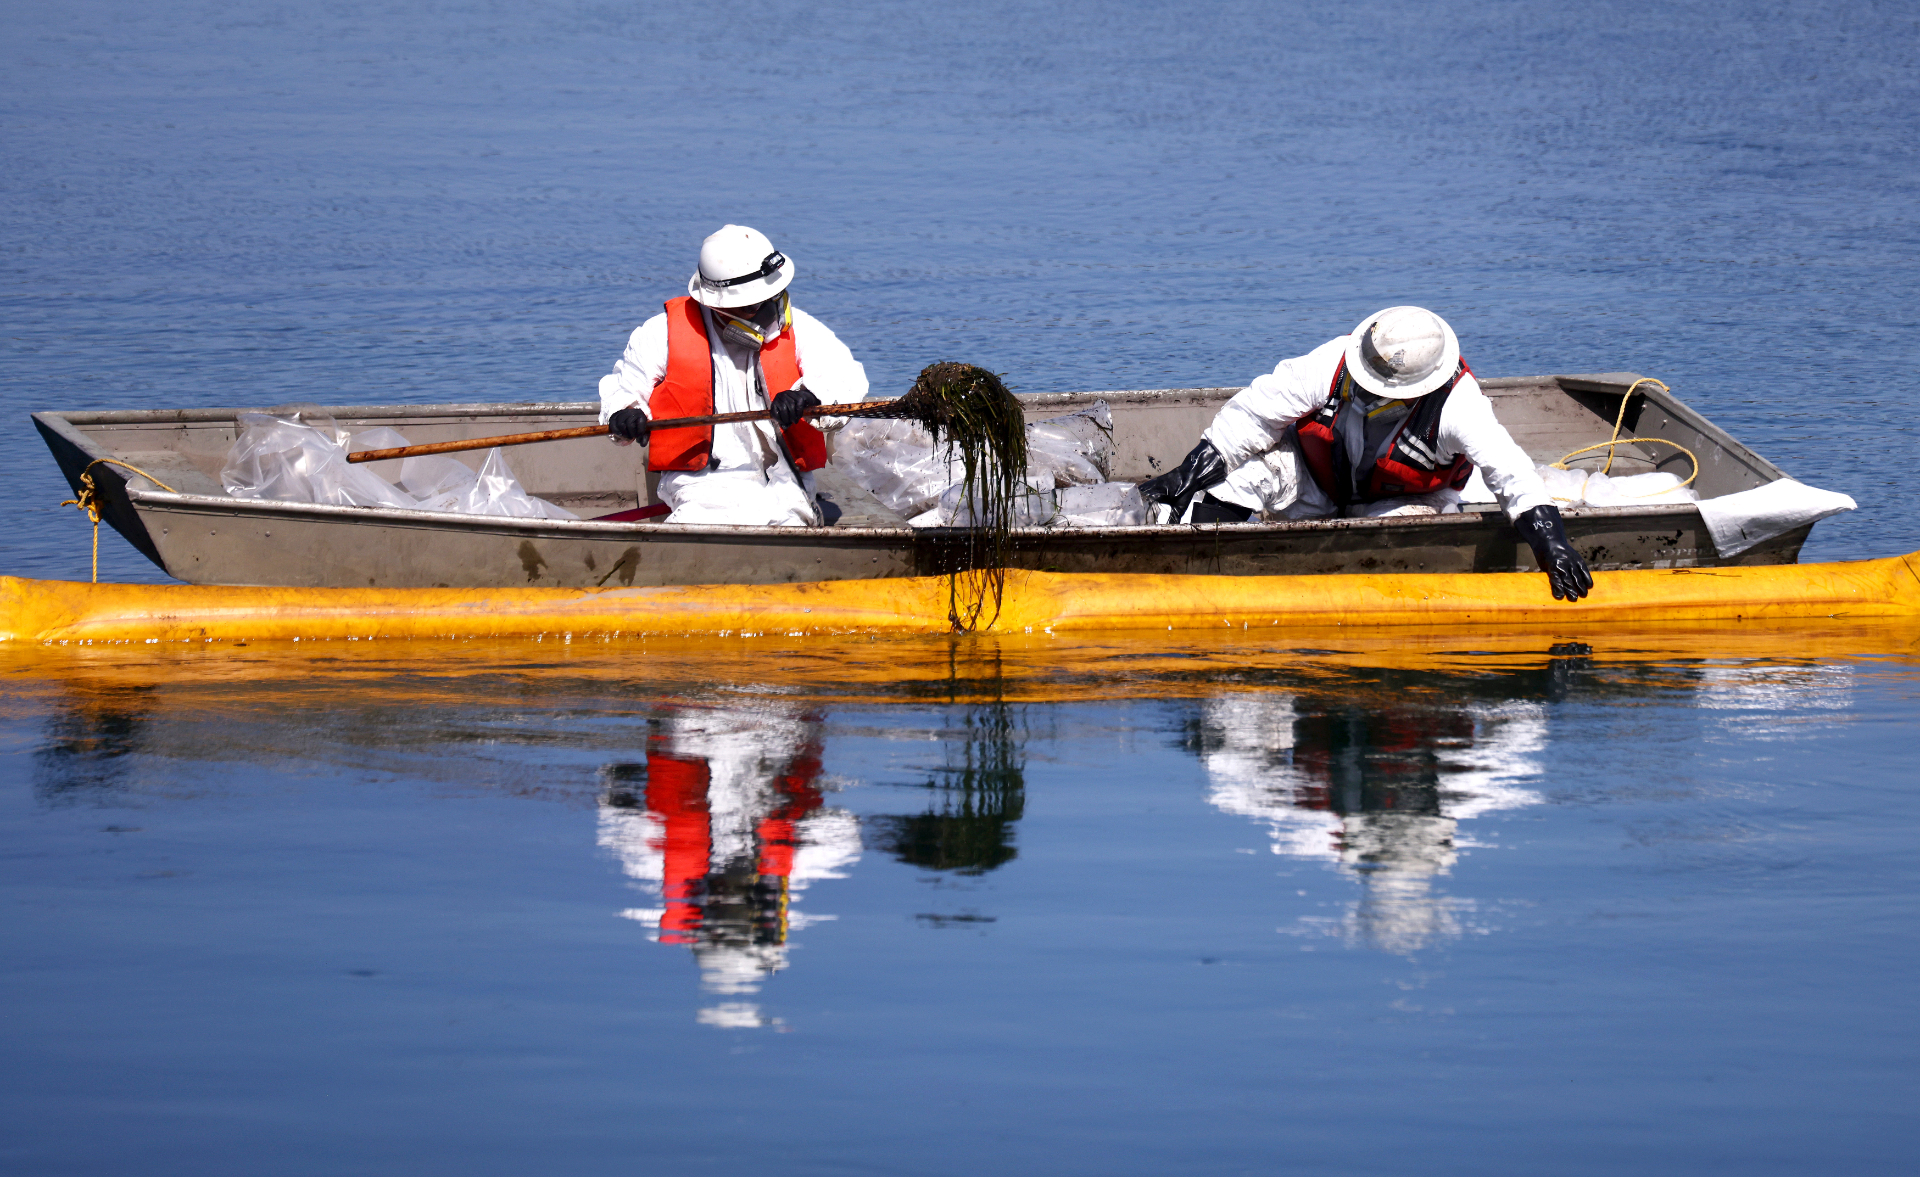 Two people dressed in white hazmat suits and life vests sit in a boat, one wielding a long tool and picking up oil-covered seaweed from the water.